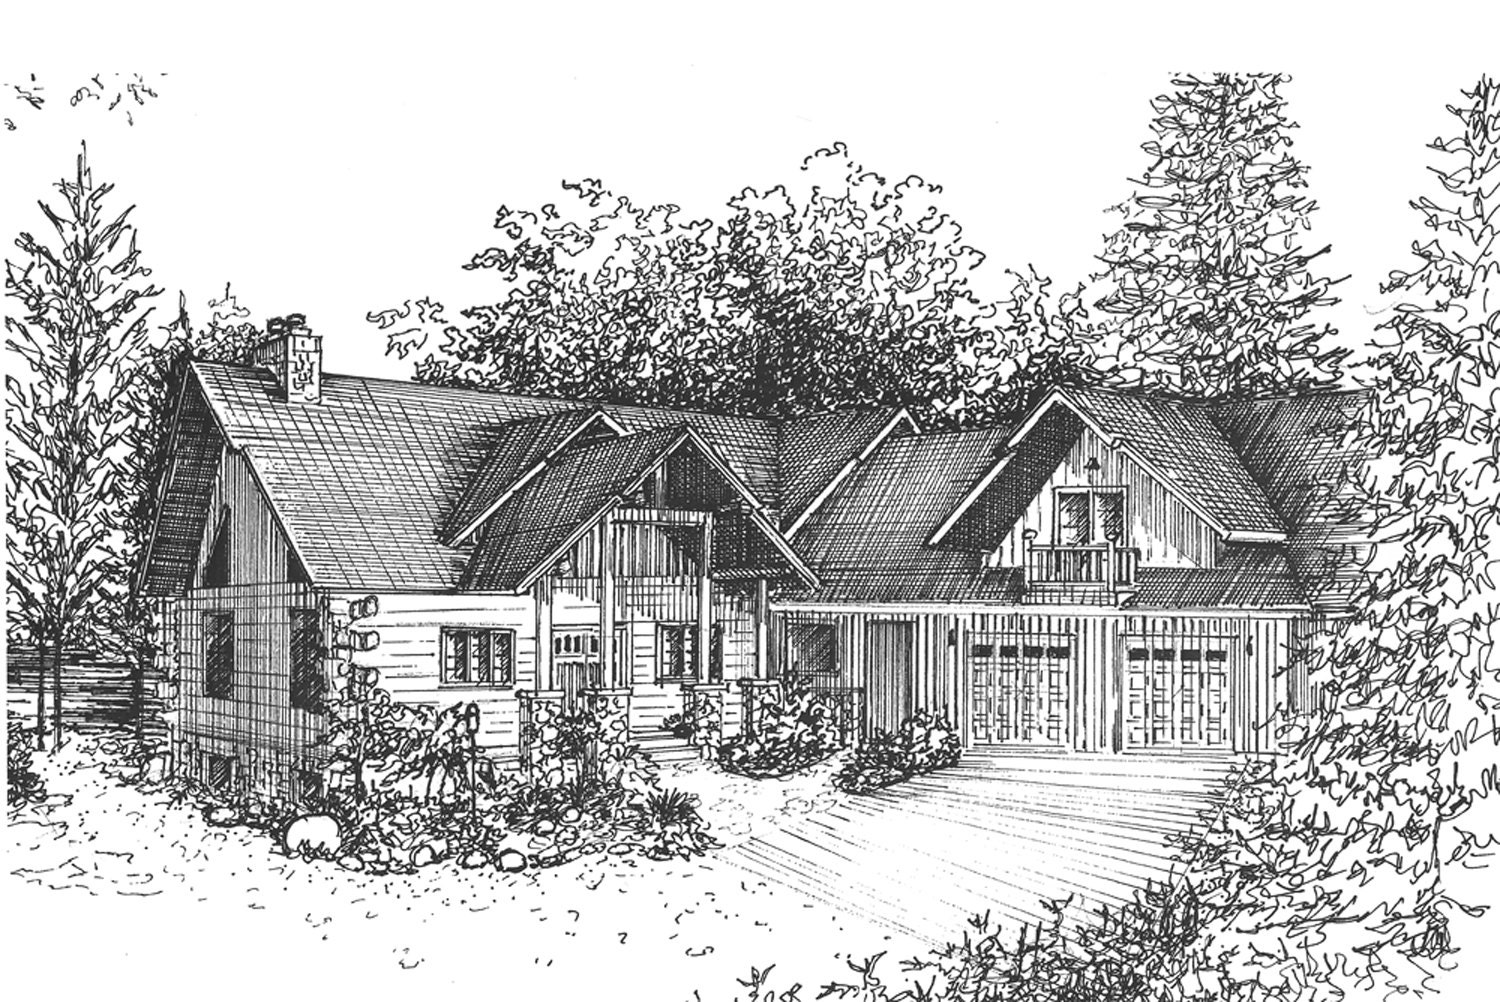 custom house portrait vacation home drawing architectural zoom